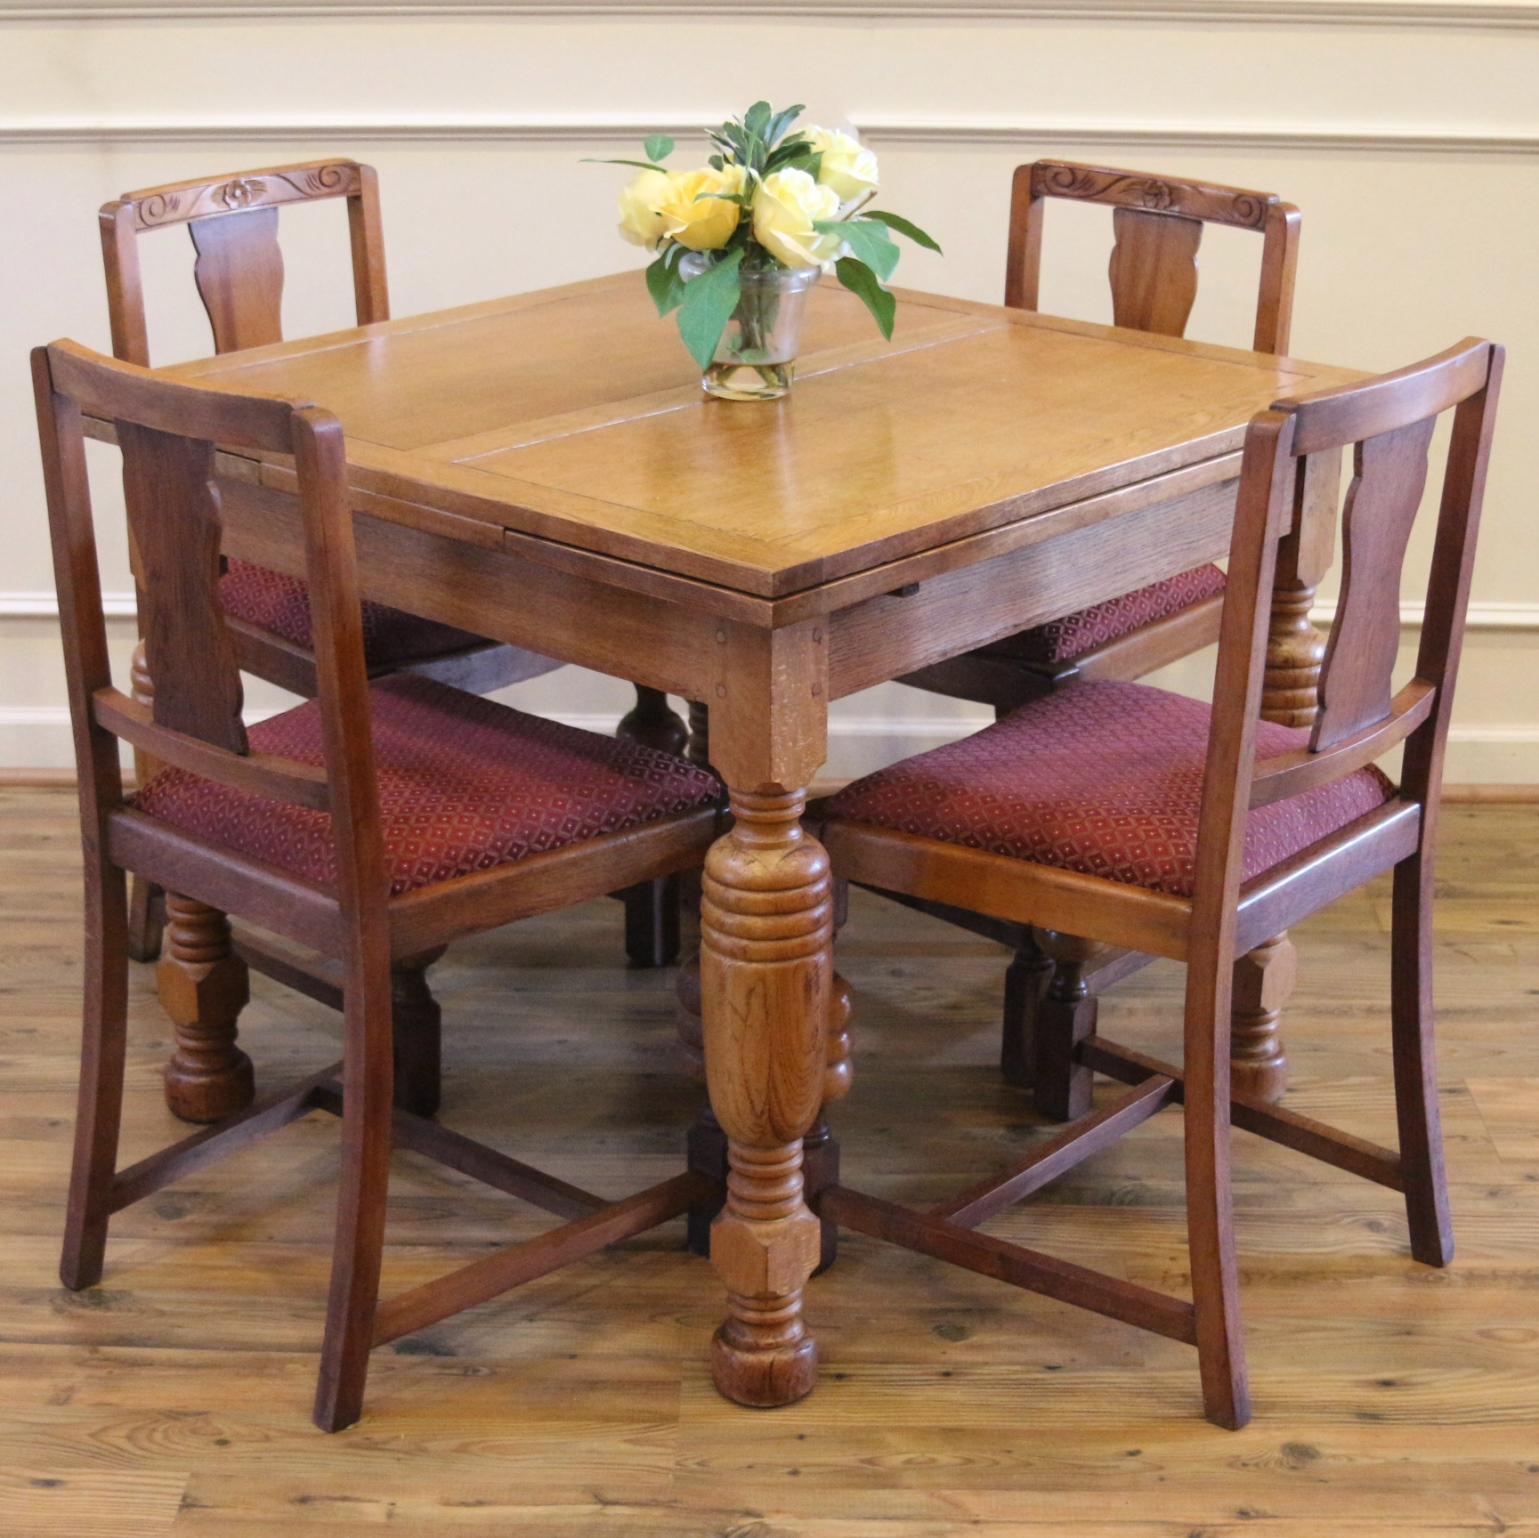 Antique English Oak Pub Table and 4 Chairs Dining Set. - For Sale - Antique English Oak Pub Table And 4 Chairs Dining Set. For Sale